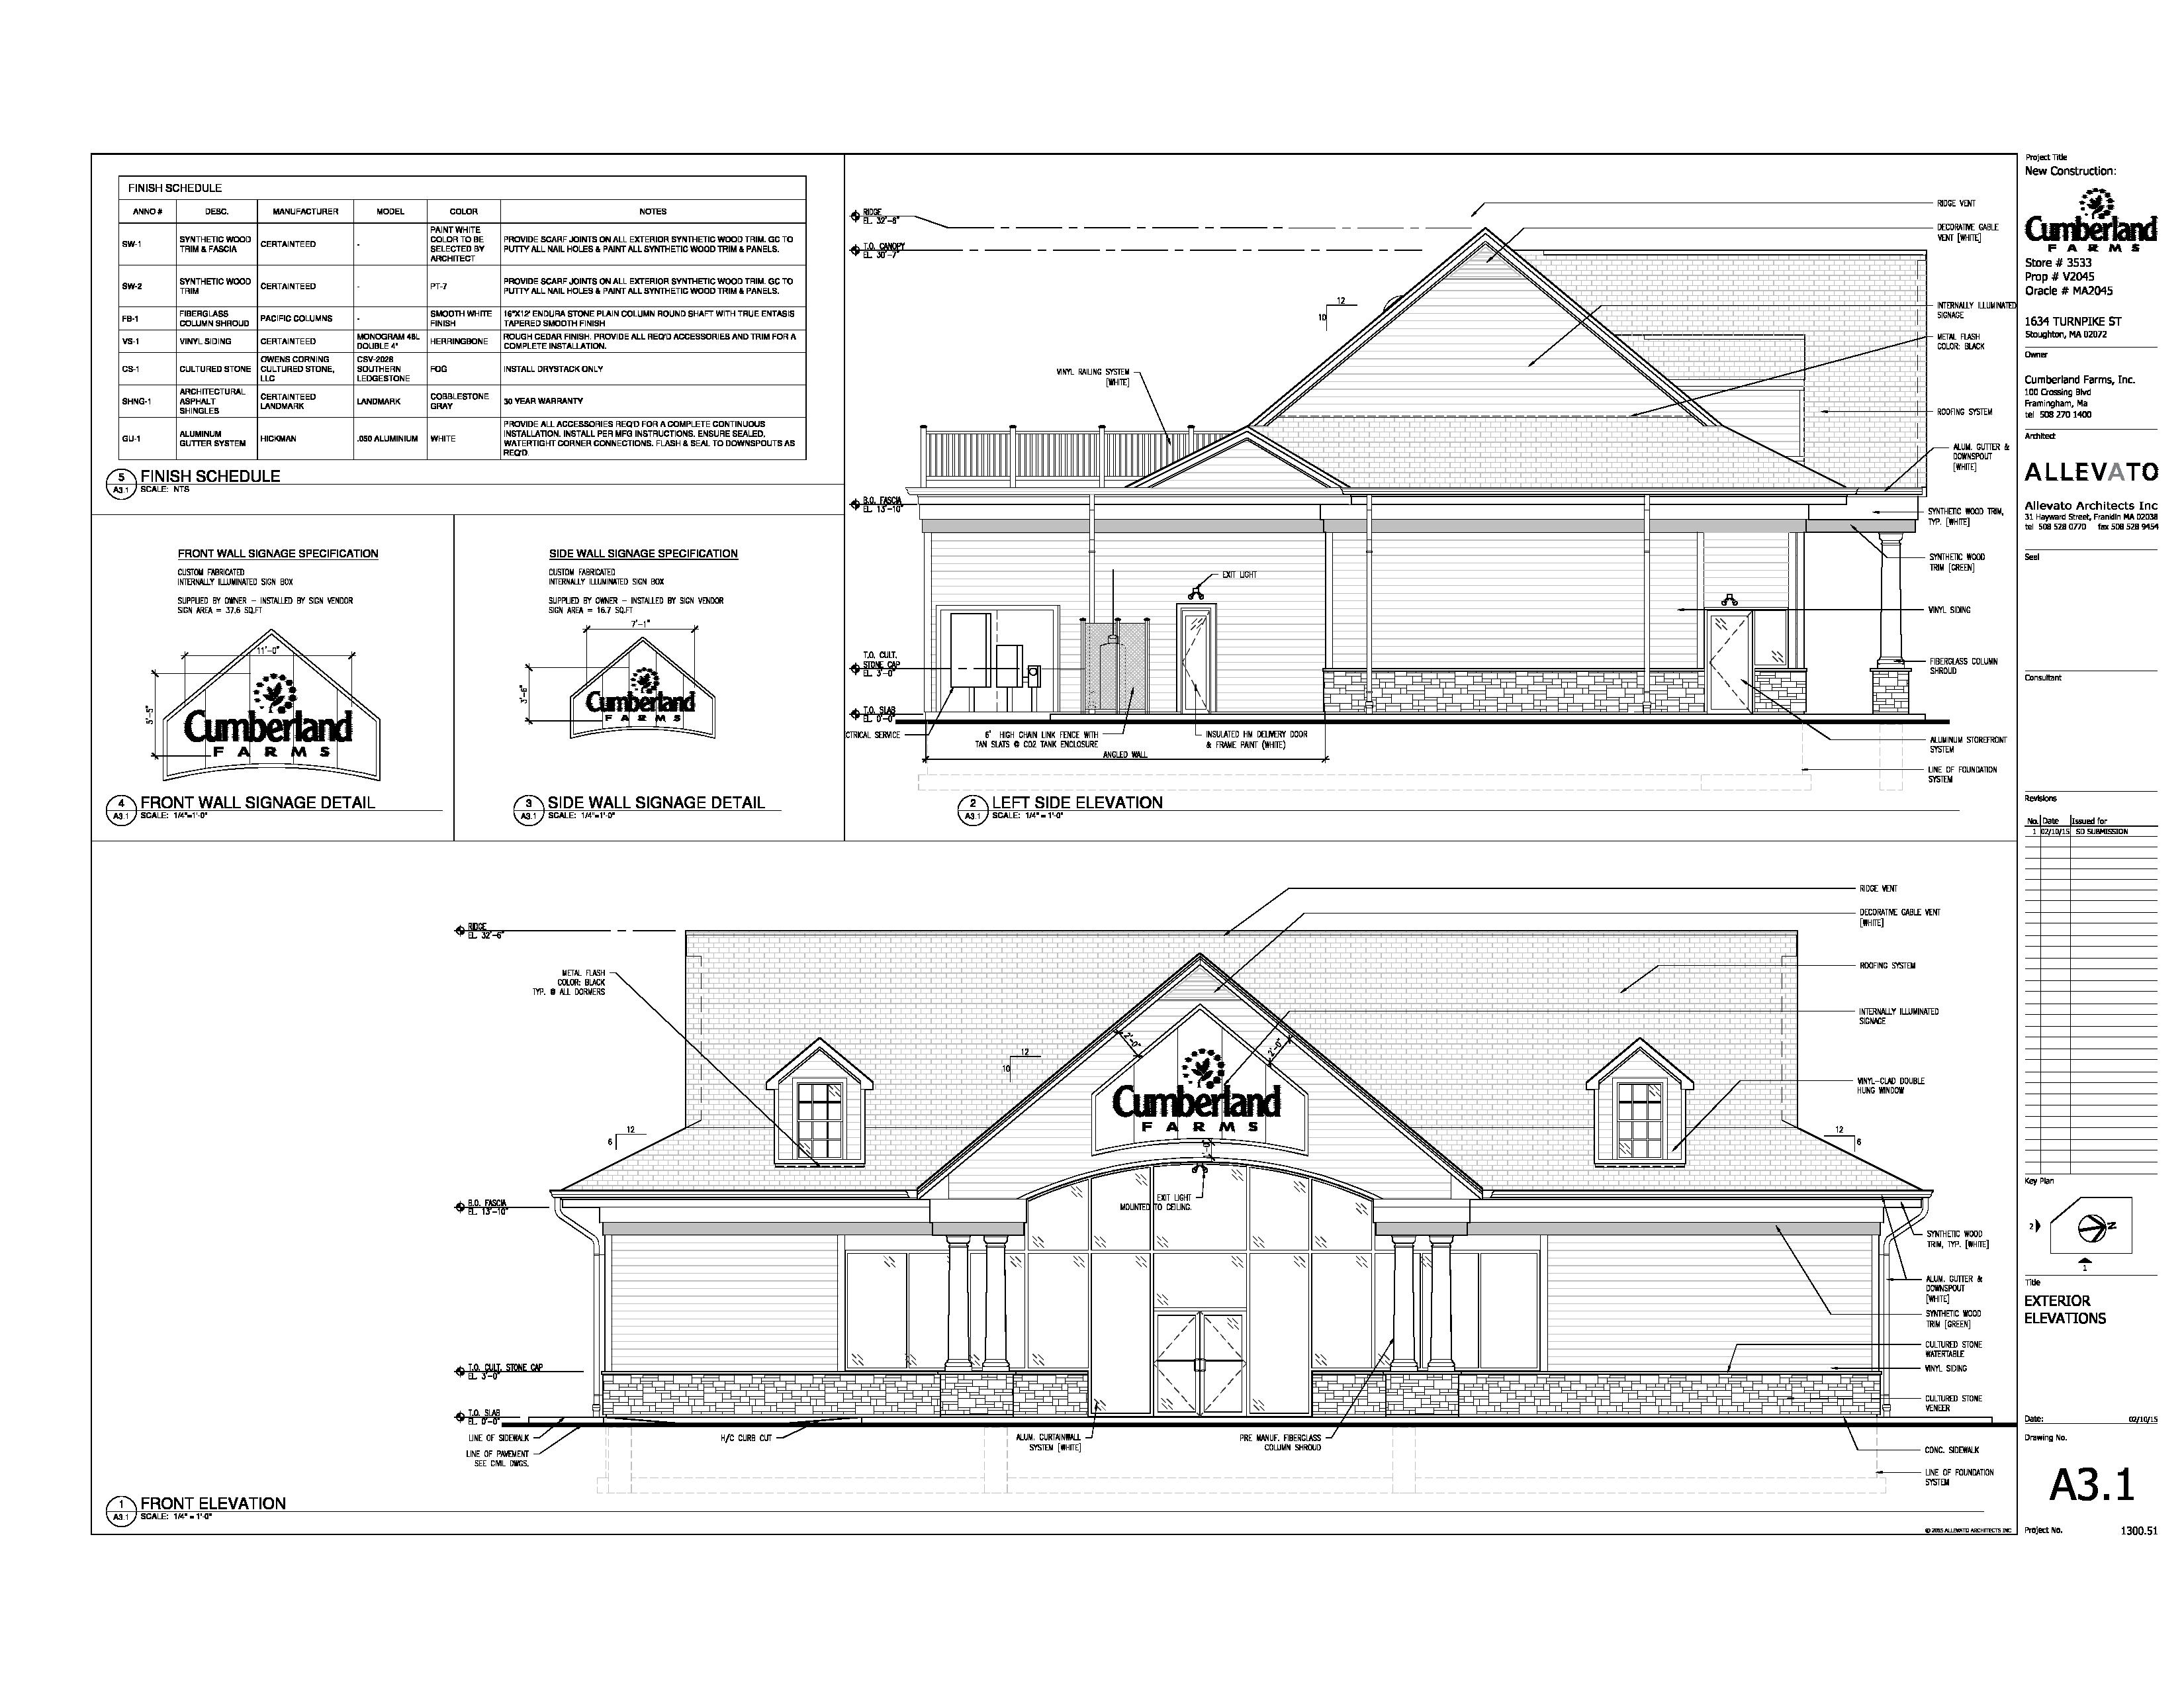 A new 4,750 square foot Cumberland Farms Convenience Store was approved by the Zoning Board of Appeals on April 16, 2015. Located at 1634 Turnpike Street (Route 139) in Stoughton, MA, The project is currently under construction with a planned opening this fall.